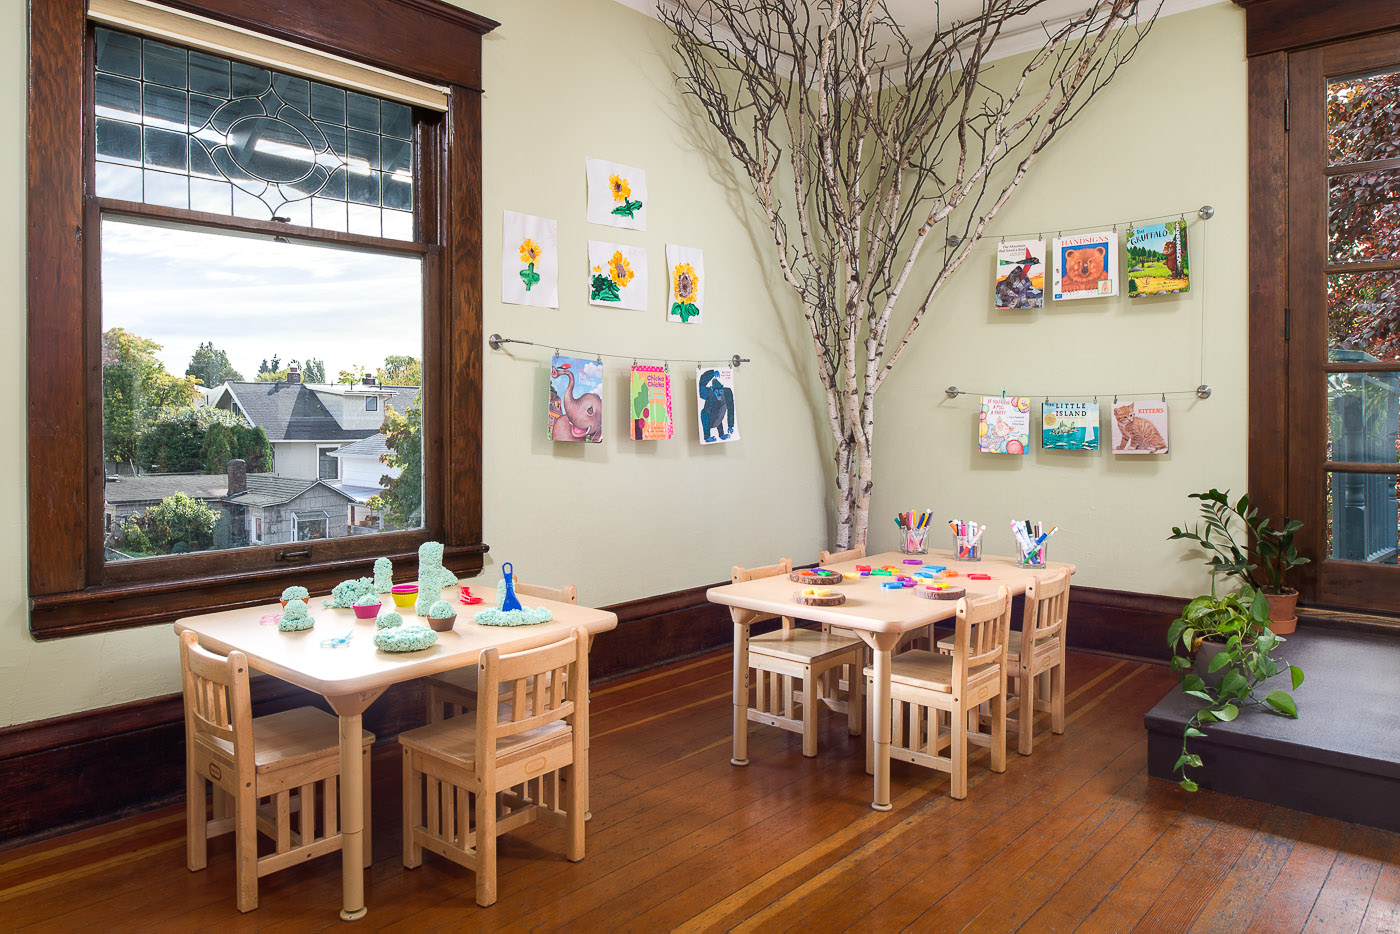 Interior Seattle preschool building with kid tables, art projects and toys